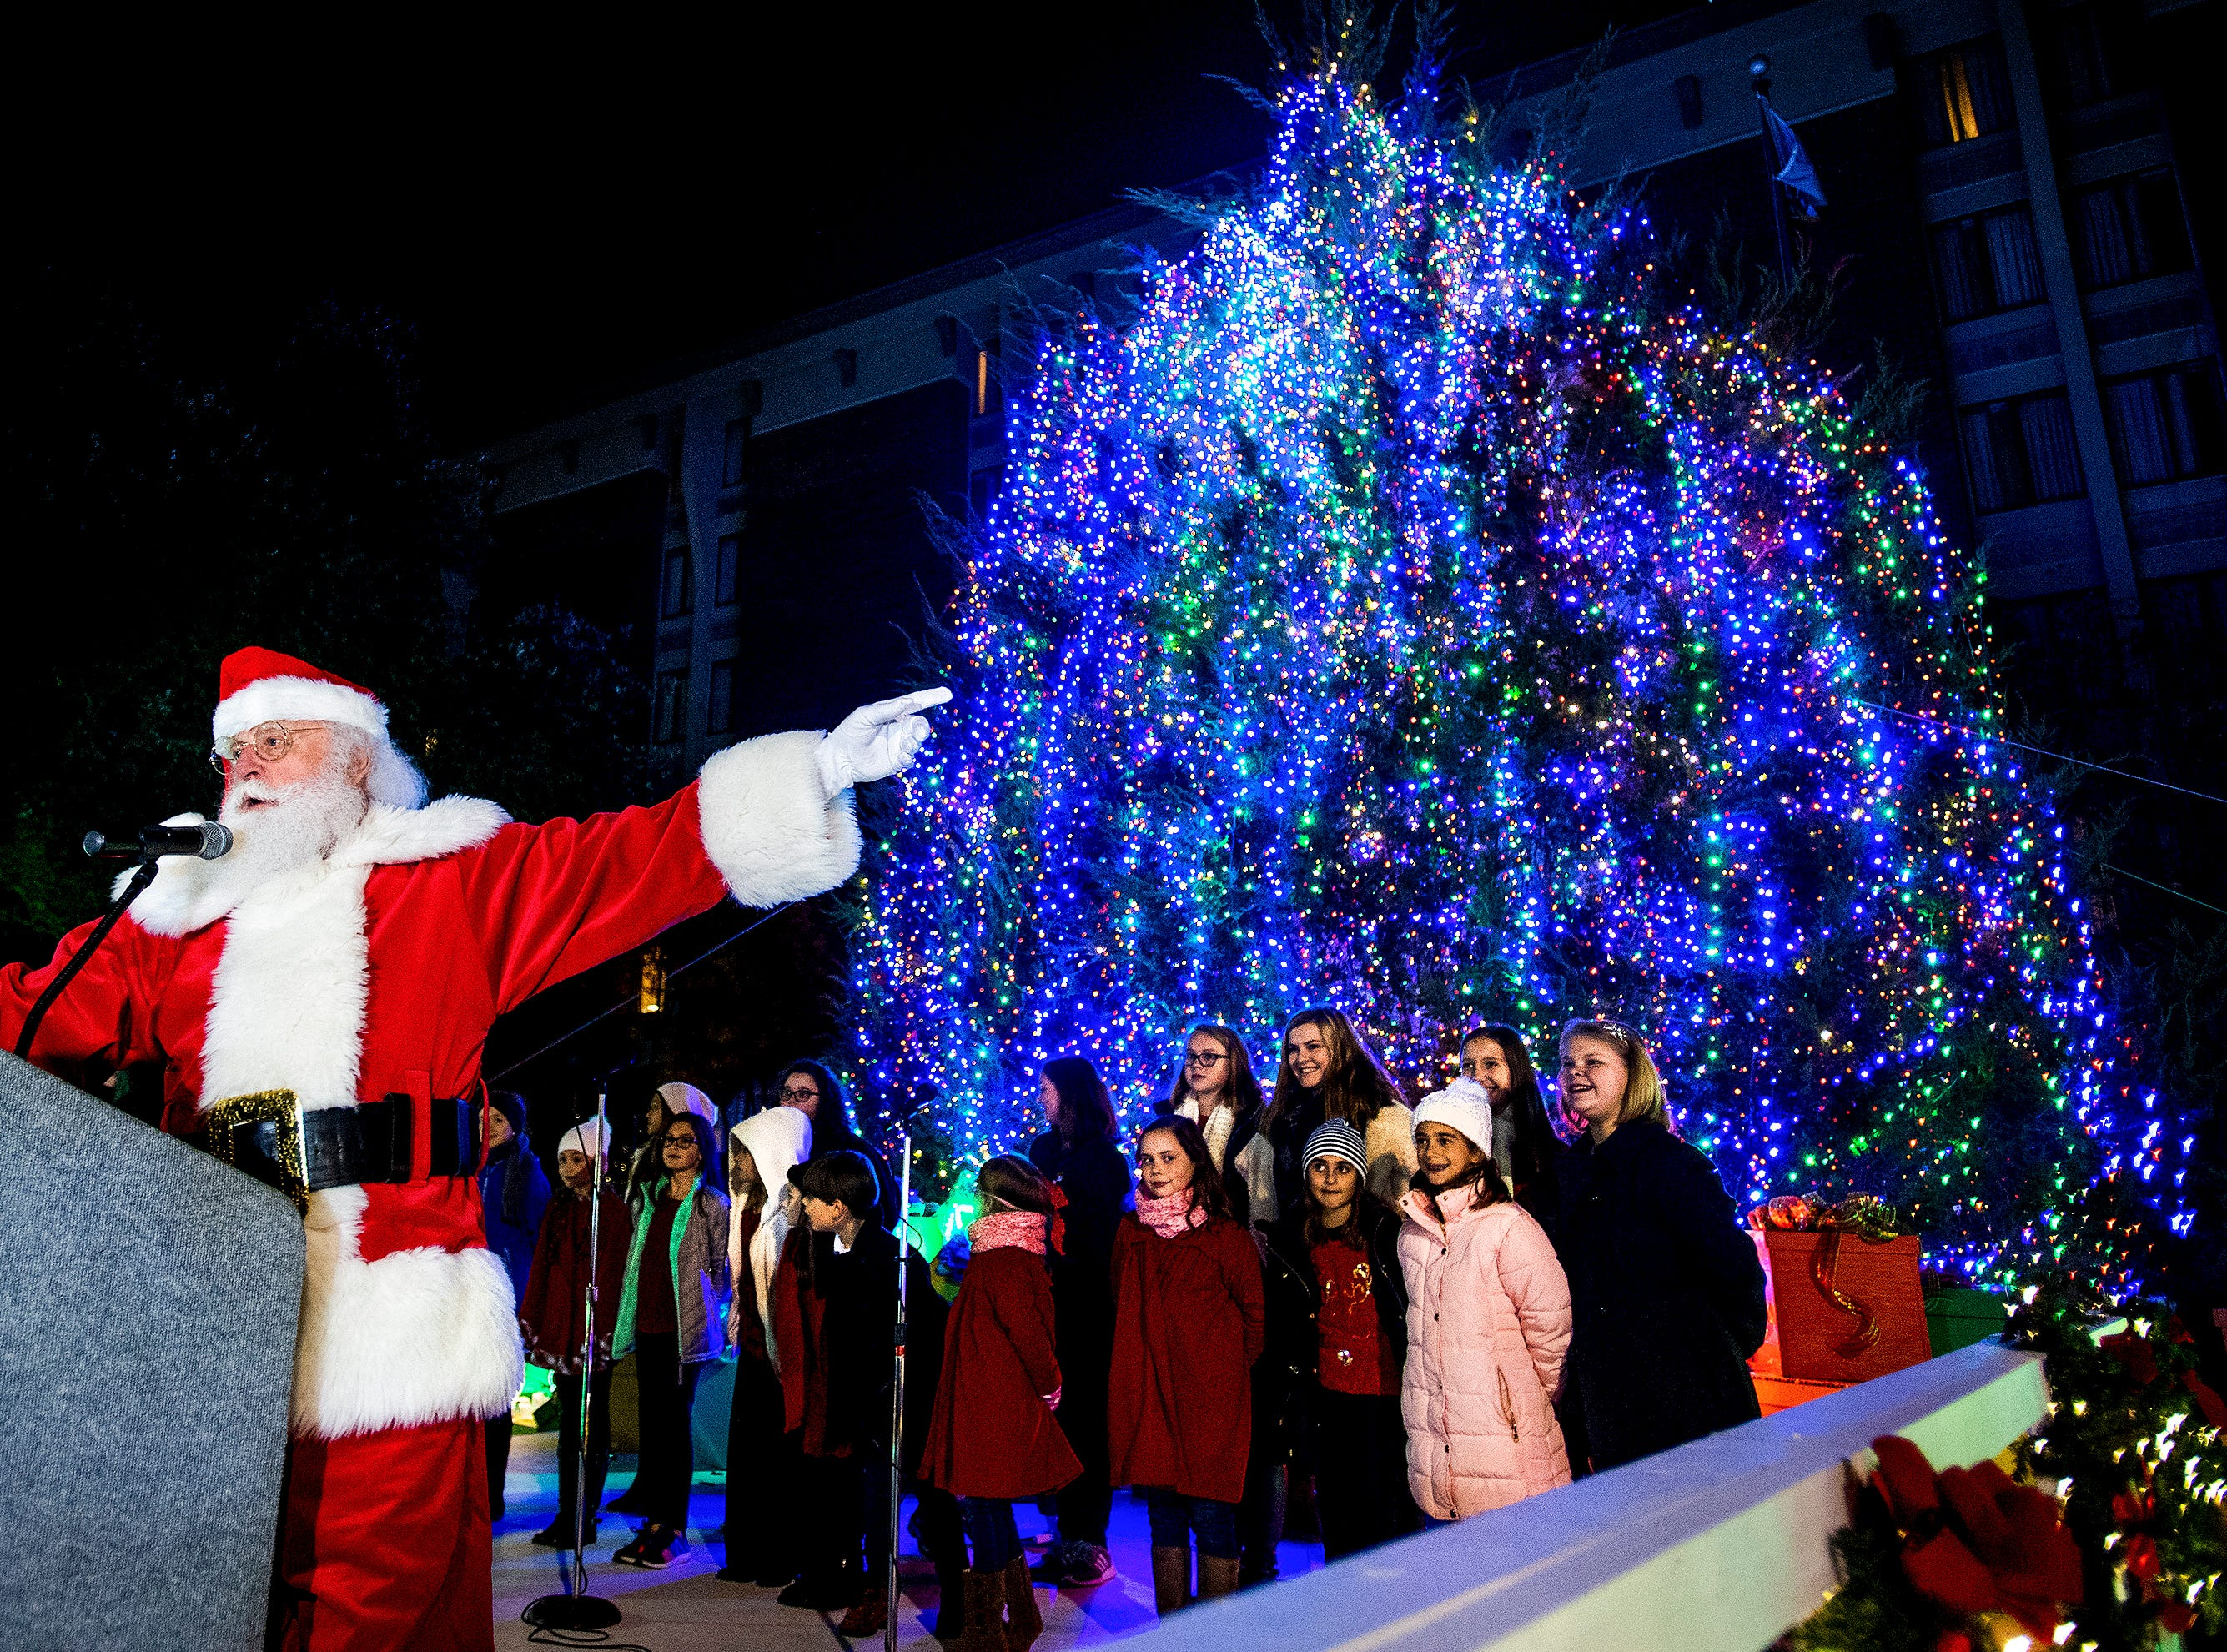 Santa Claus takes part in the City of Montgomery Christmas Tree lighting in Montgomery, Ala., on Tuesday evening November 27, 2018.